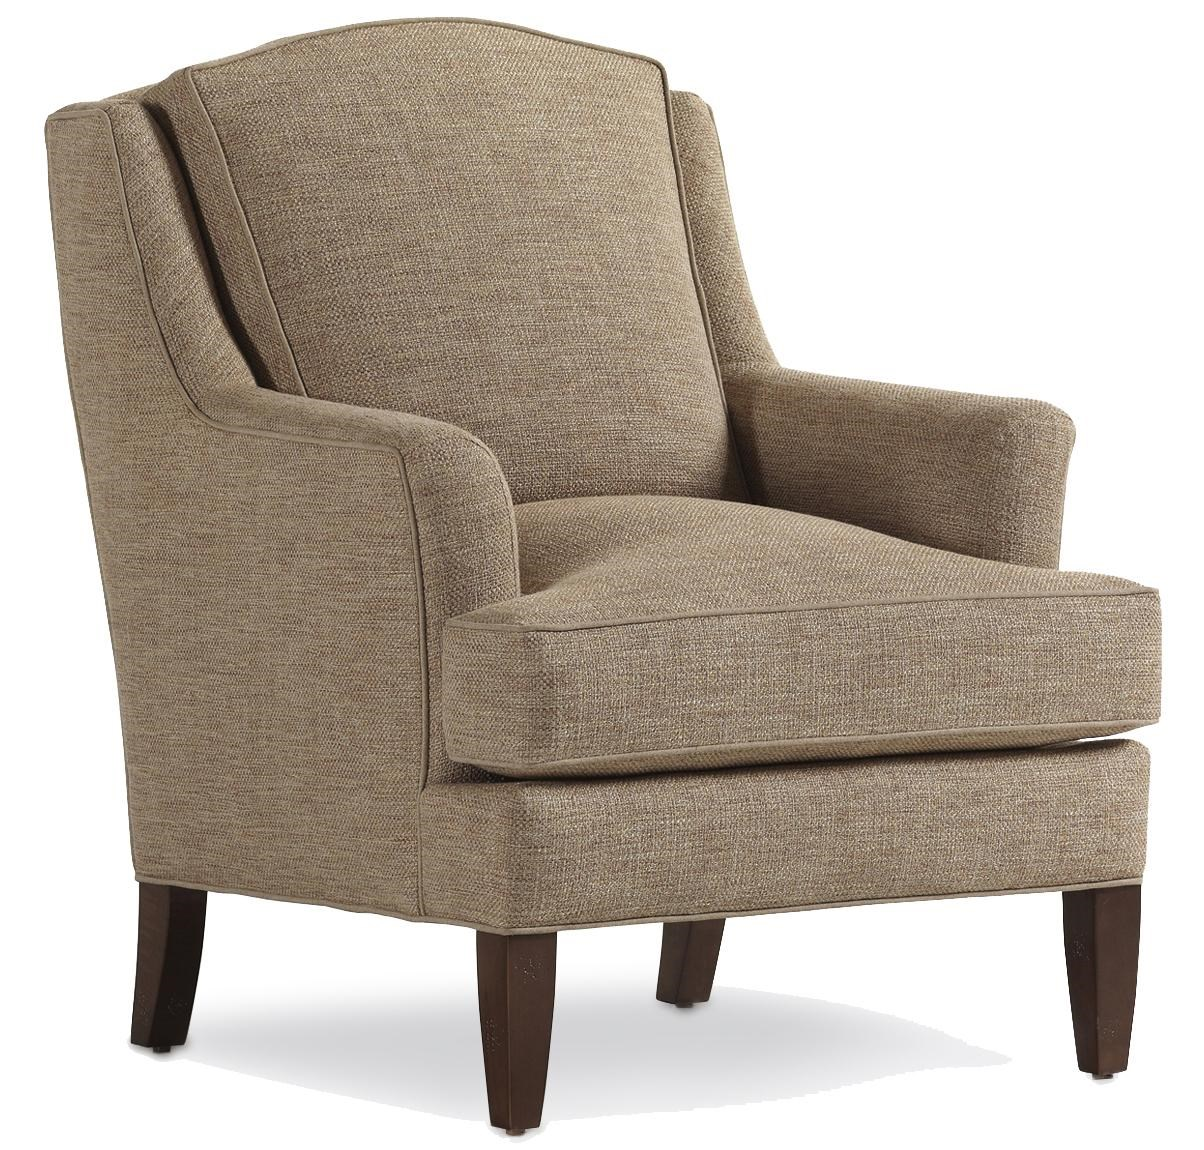 Jessica Charles Fine Upholstered Accents Landon Chair with Track Arms - Sprintz Furniture ...